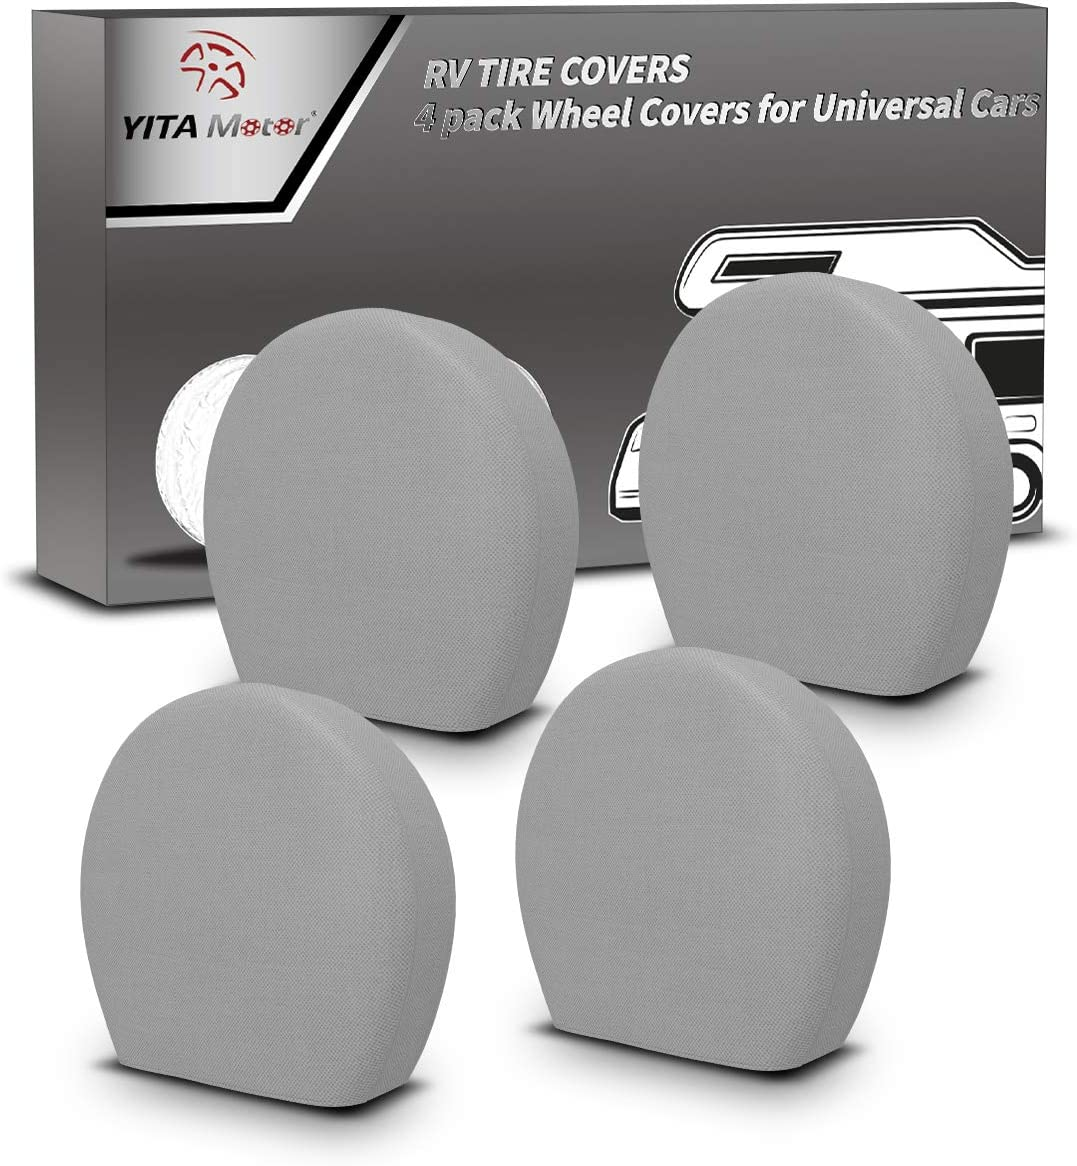 YITAMOTOR Set of 4 Waterproof Tire Cover Waterproof UV Coating Tire Protectors Fits 24-27 Tire Diameters Universal Tire Cover Extra Thick 5-ply Motorhome Wheel Covers